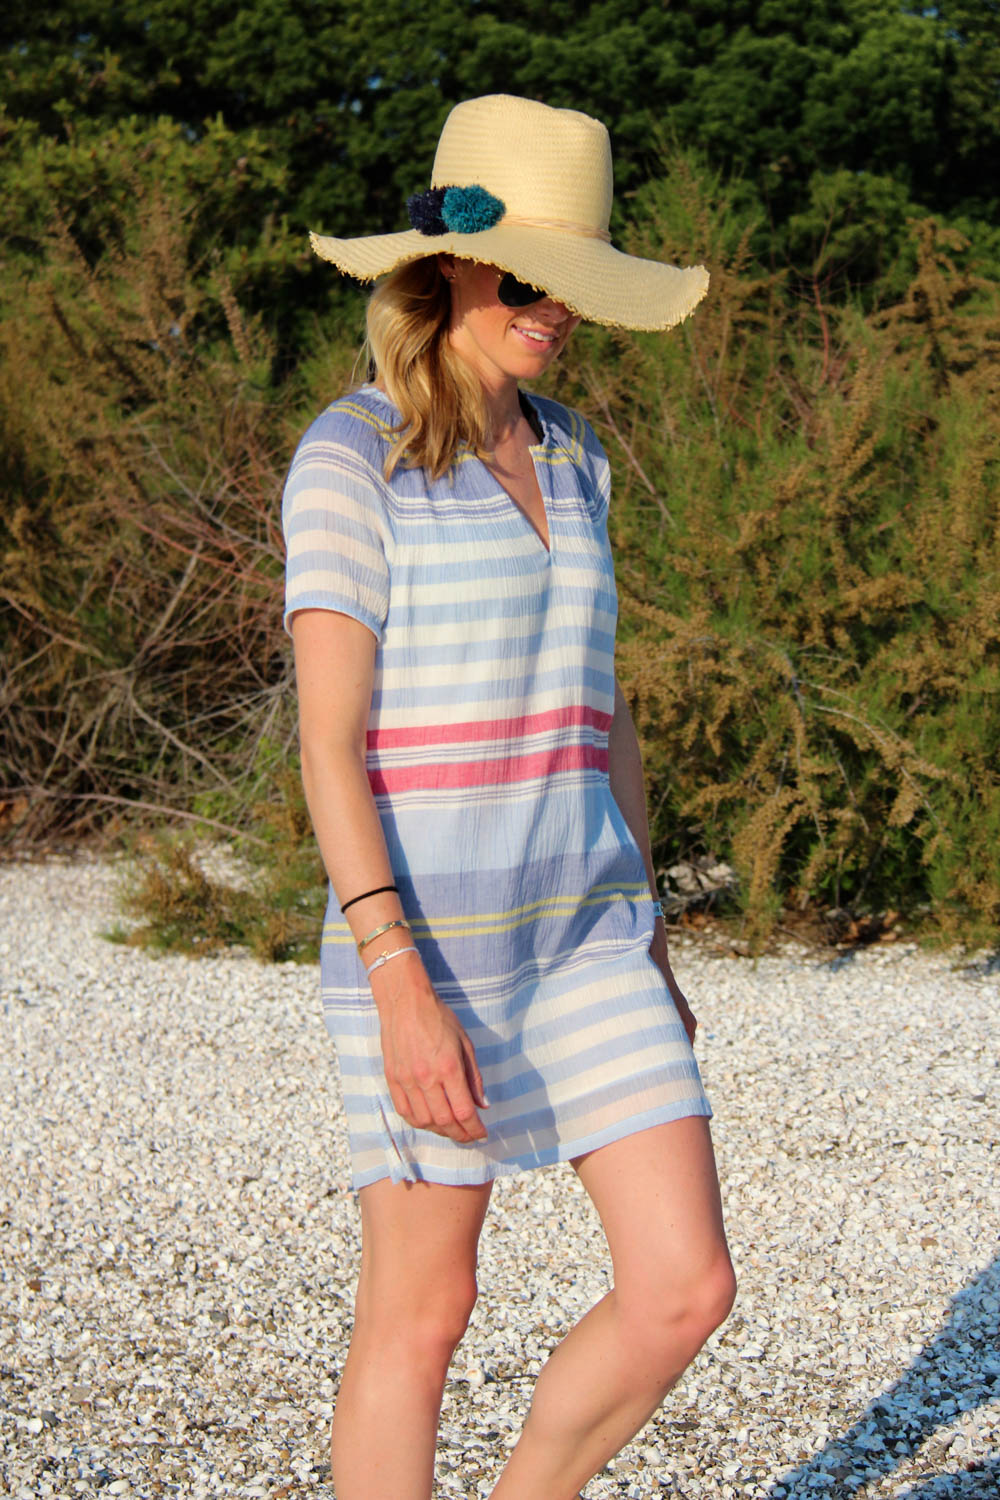 SOFT JOIE JEANA DRESS | $198 HAT ATTACK BRAIDED POM POM HAT | $105